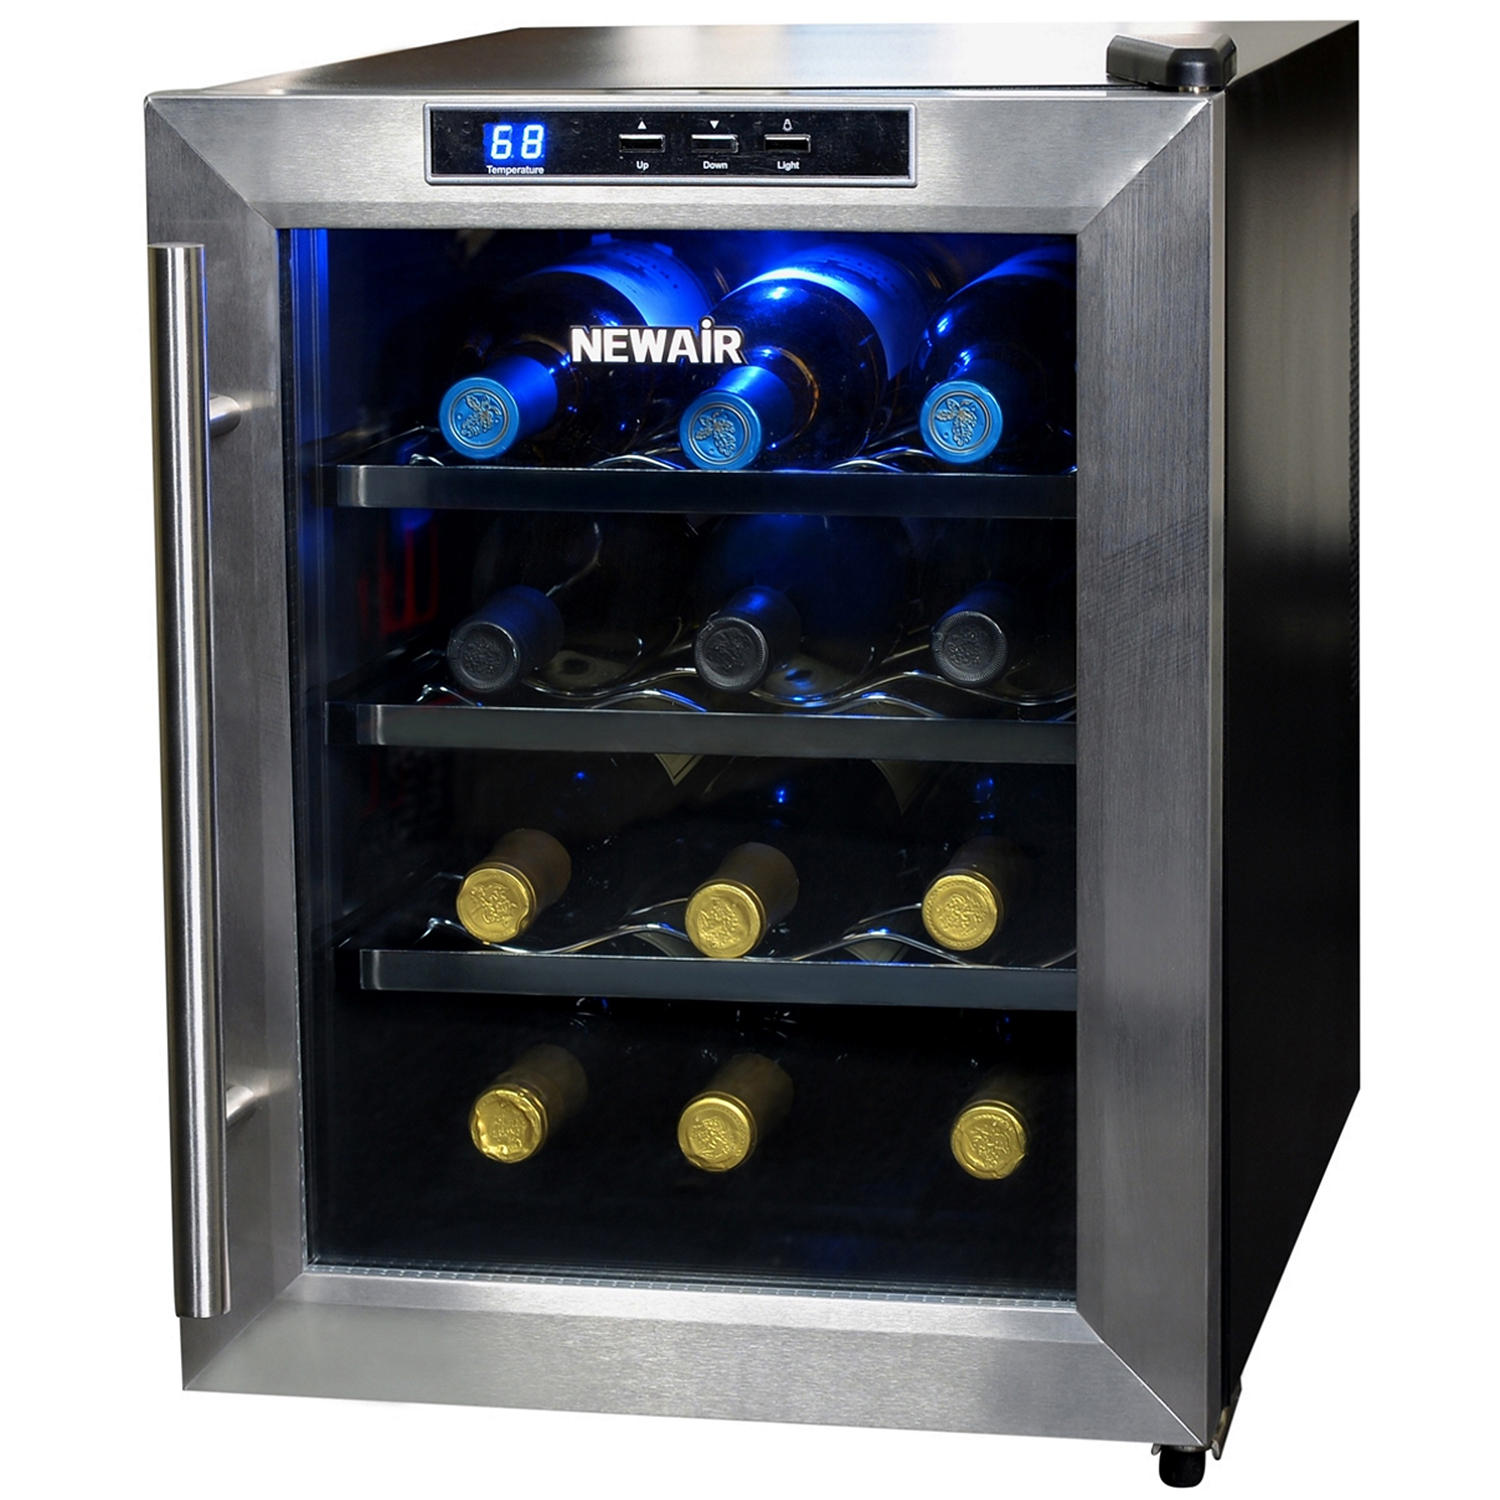 NewAir AW-121E 12-Bottle Stainless-Steel Wine Cooler